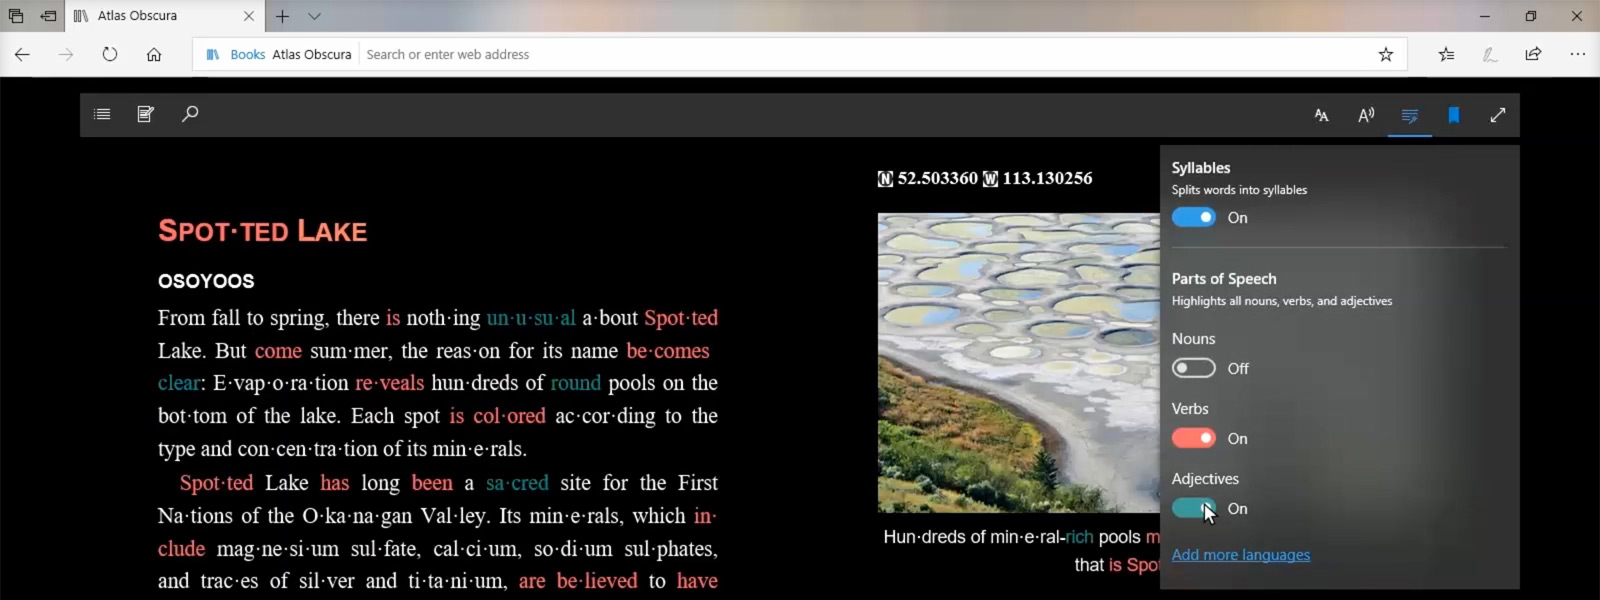 Screen image of Learning Tools functionality highlighting the nouns, verbs, and adjectives on a given web page